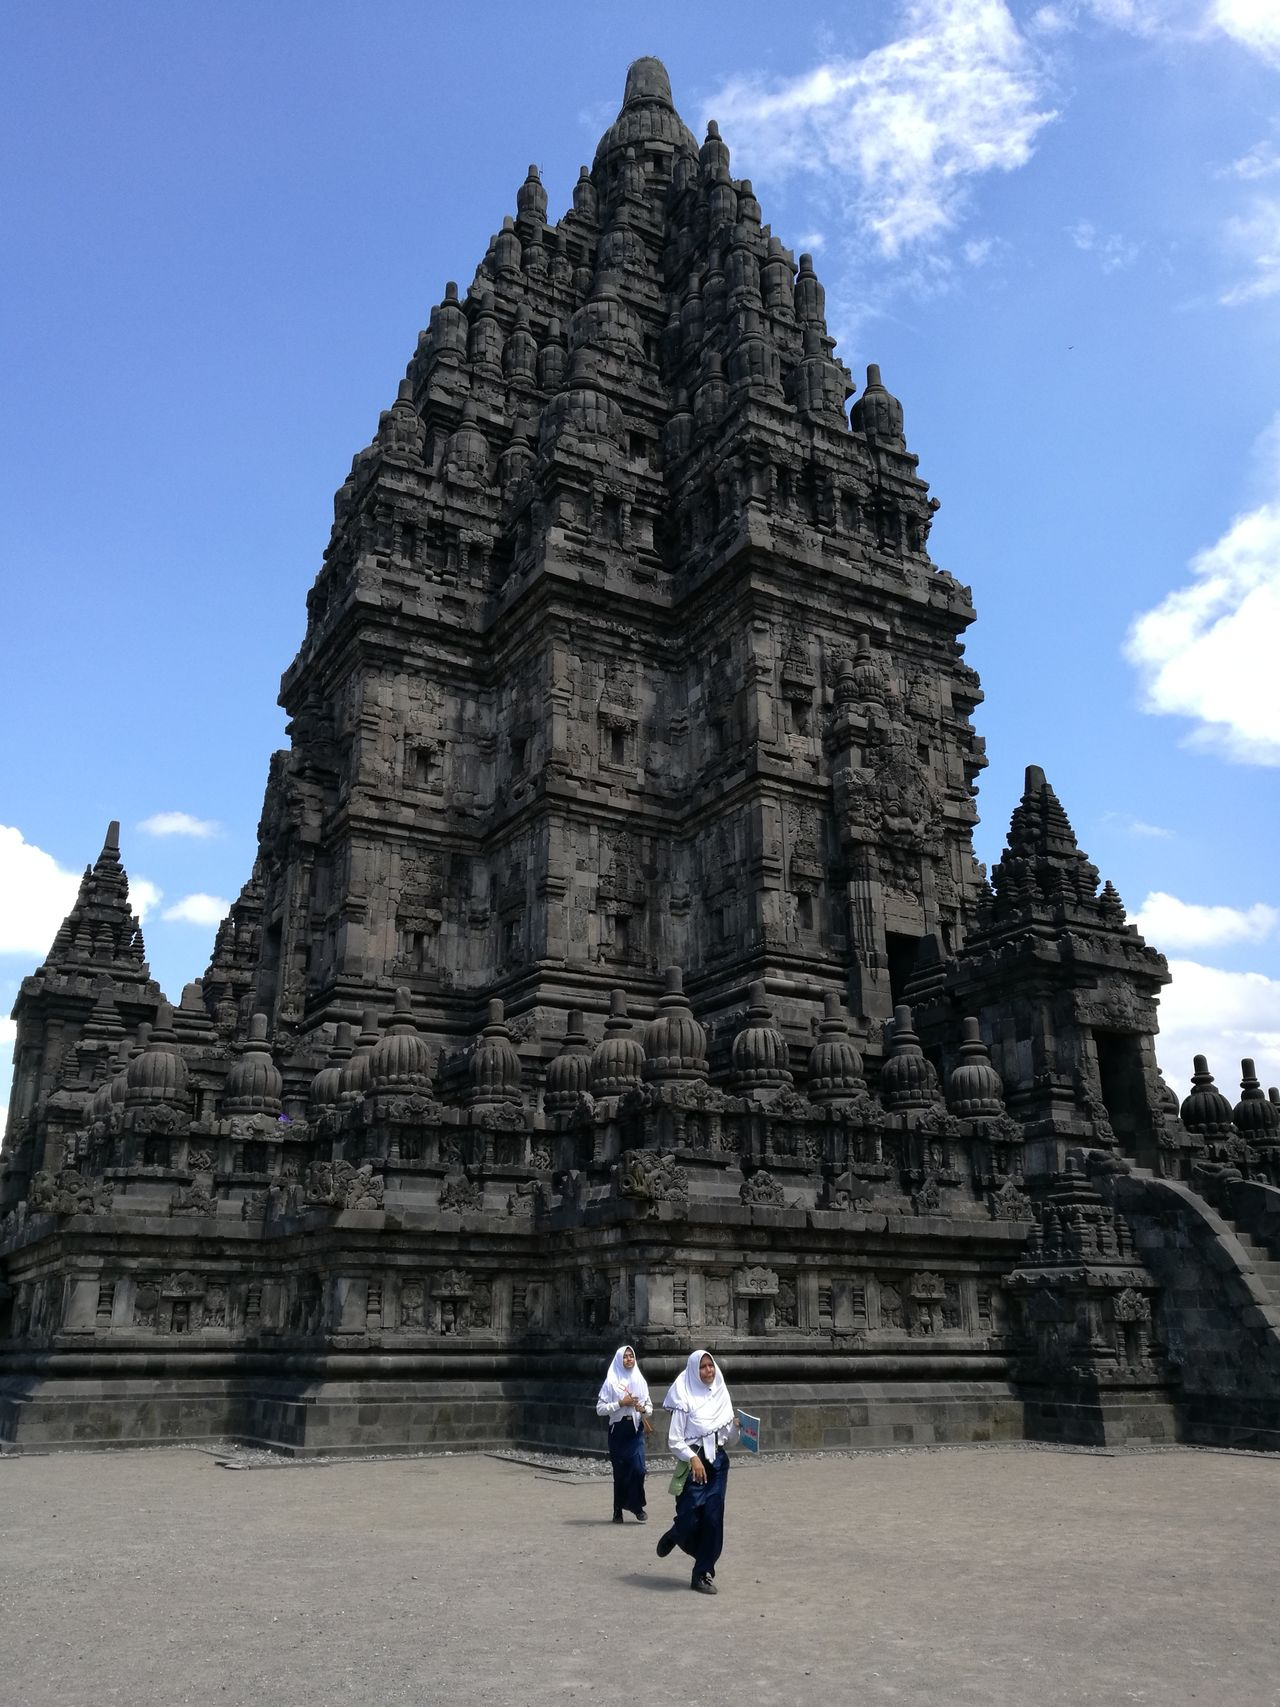 Travel Destinations Architecture Old Ruin History Religion Ancient Civilization Built Structure Travel Building Exterior School Children Running Neighborhood Map Prambanan Temple, Yogyakarta